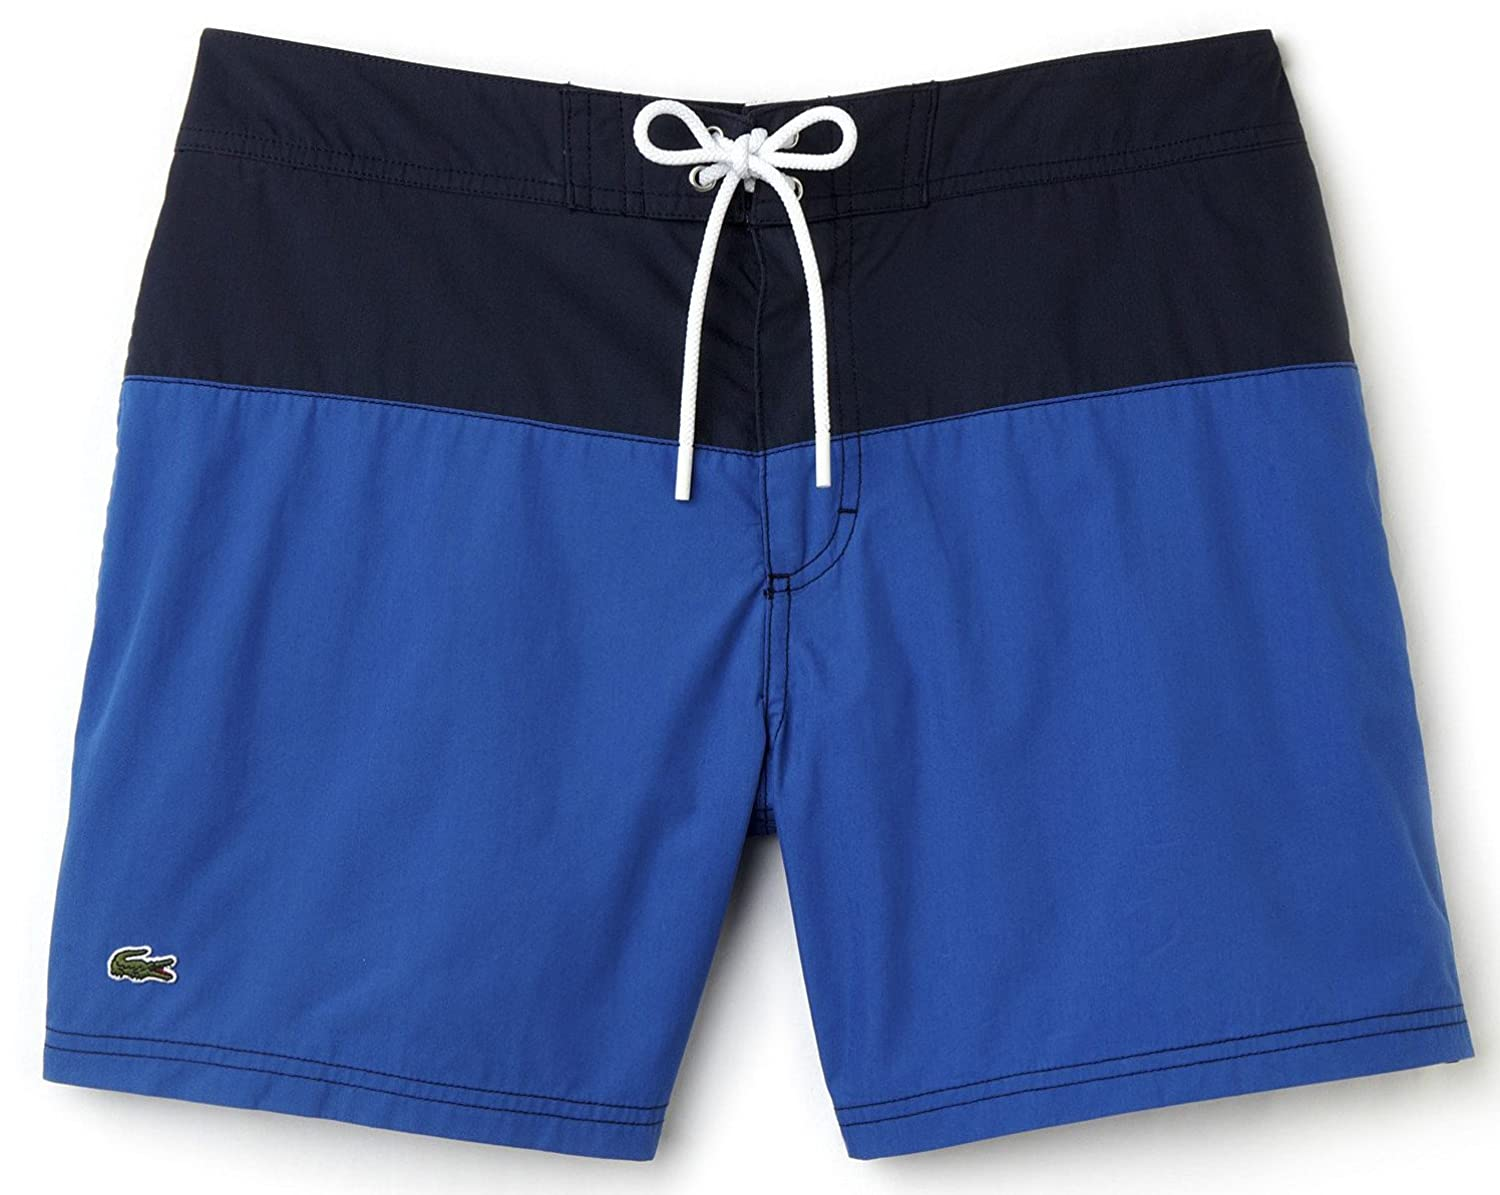 412b78edb7ac3 Details about NWT Lacoste Mens Colorblock Taffeta Board Shorts/Swim Trunks,  MH7093, sizes vary